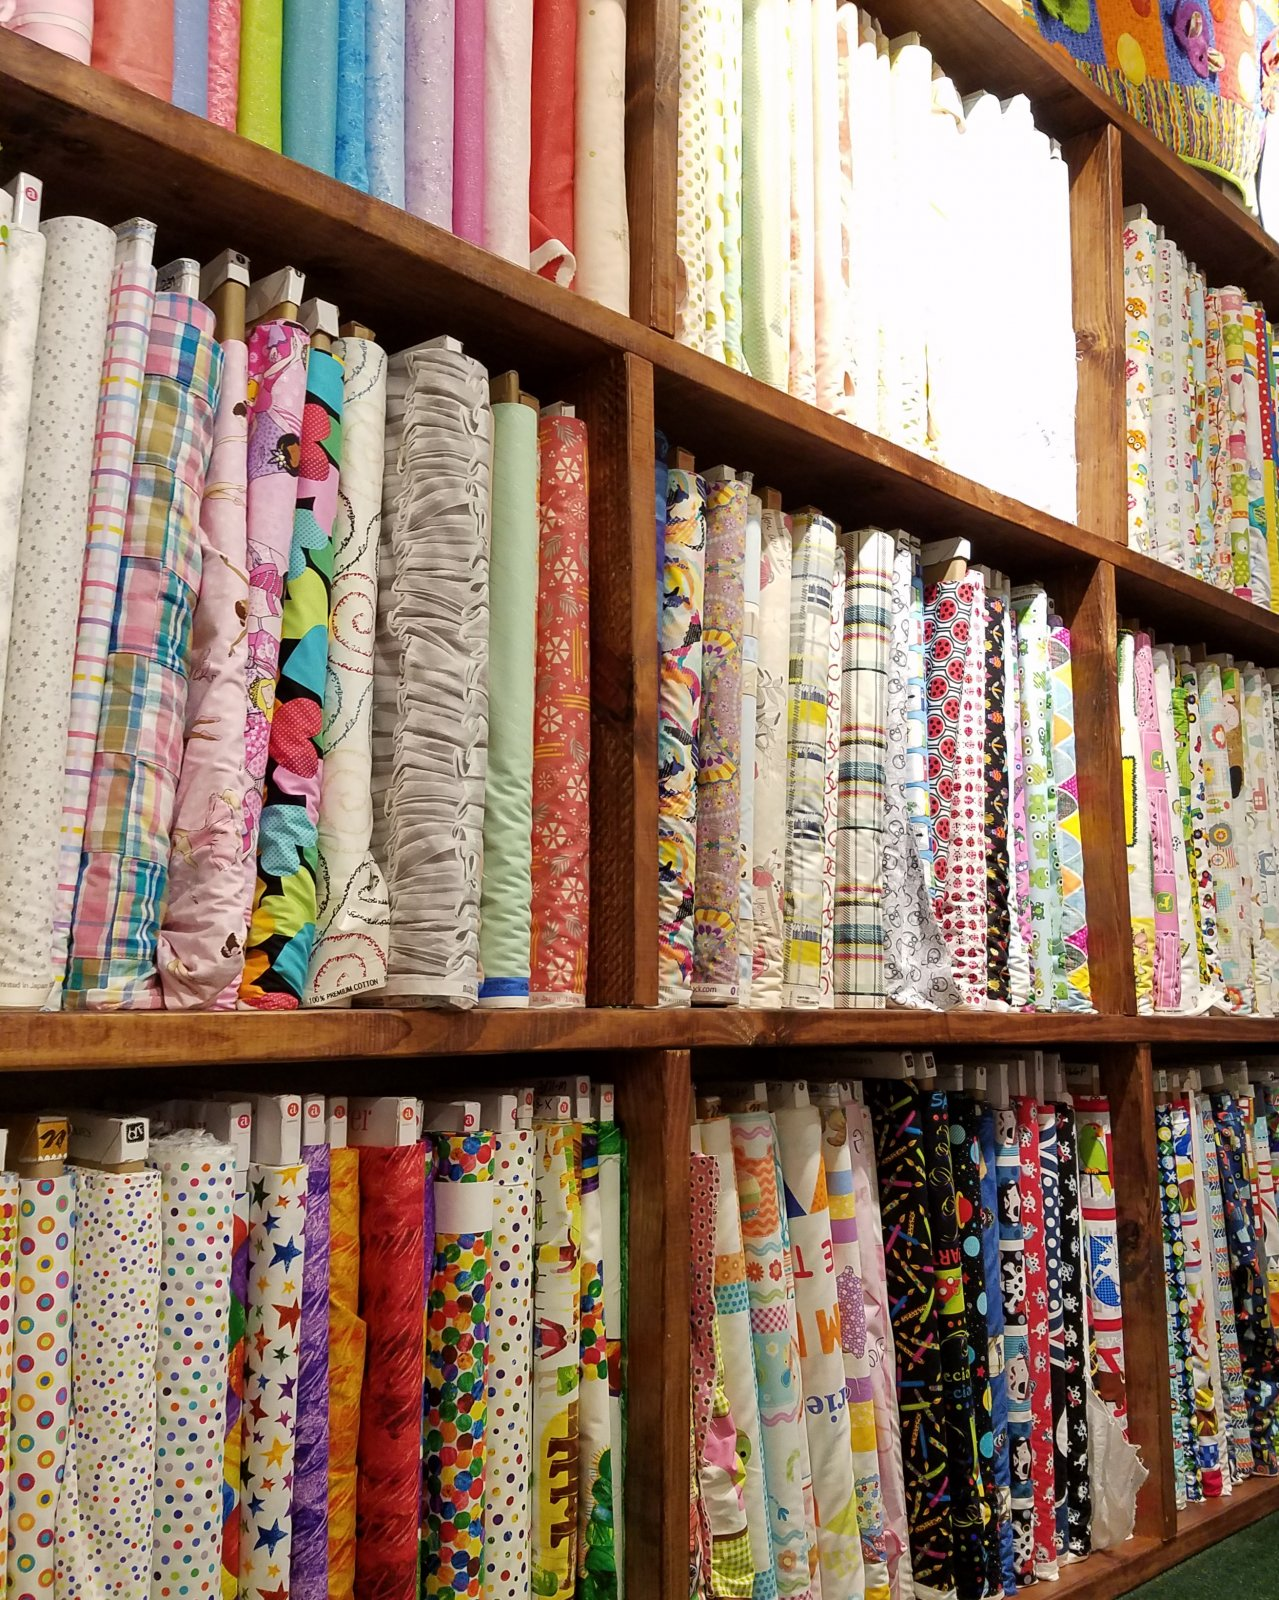 Sewing Stores Near Me : sewing, stores